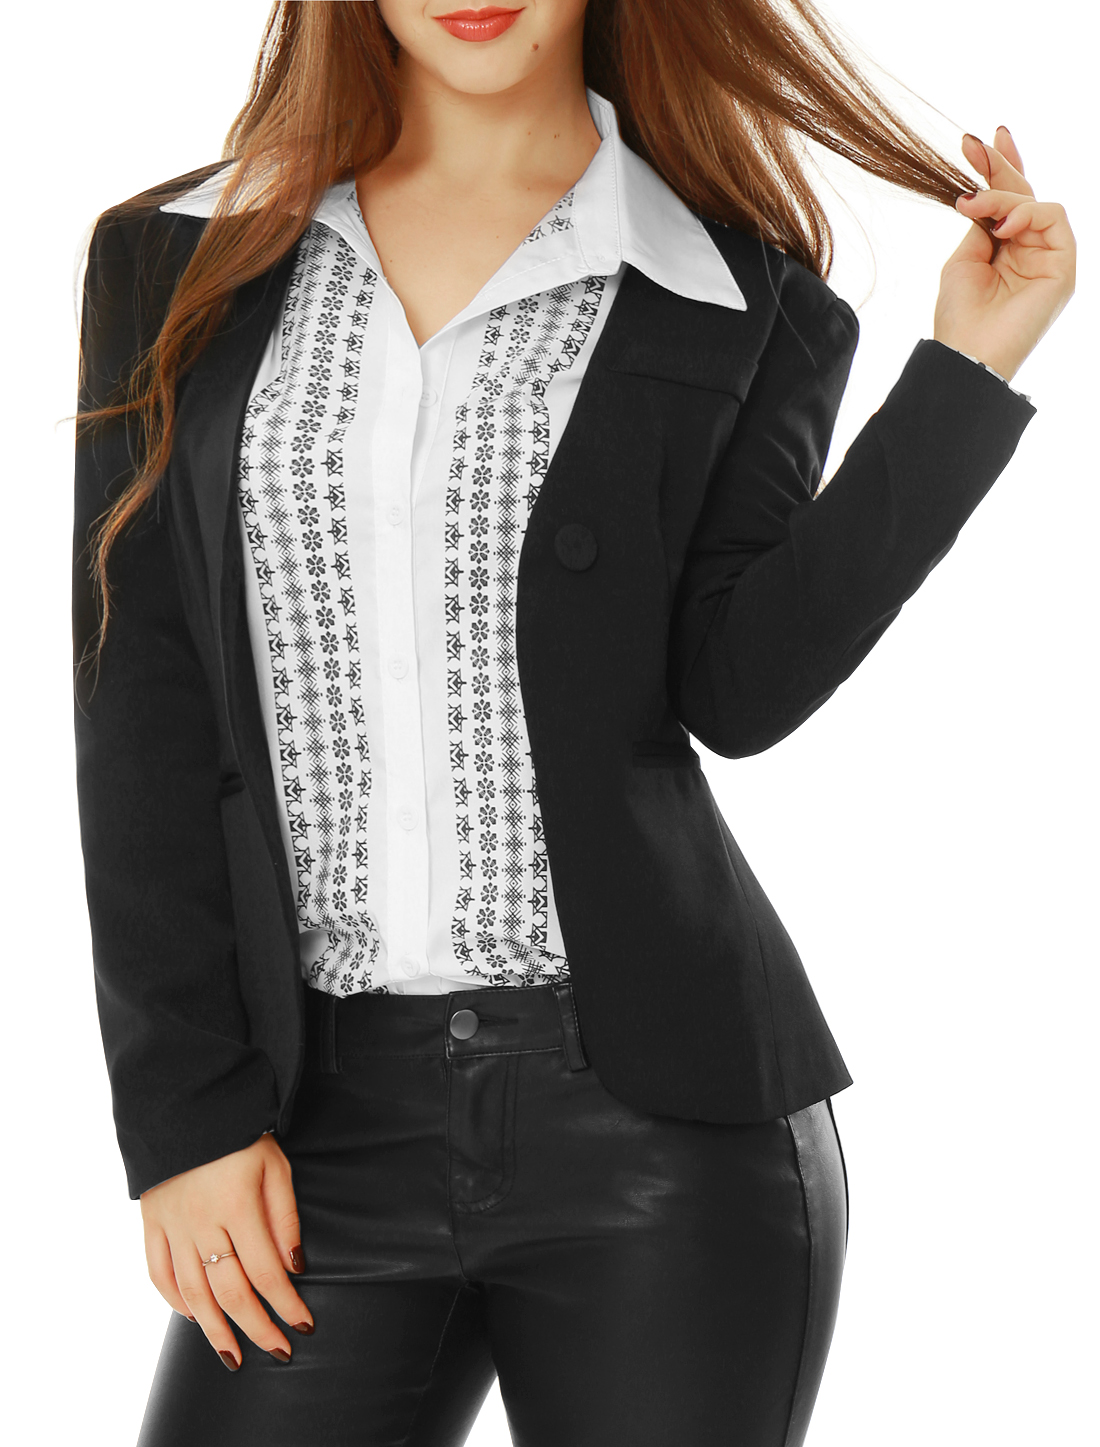 Women Roll Up Cuffs Dots Lined Decorative Pockets Blazer Black XL